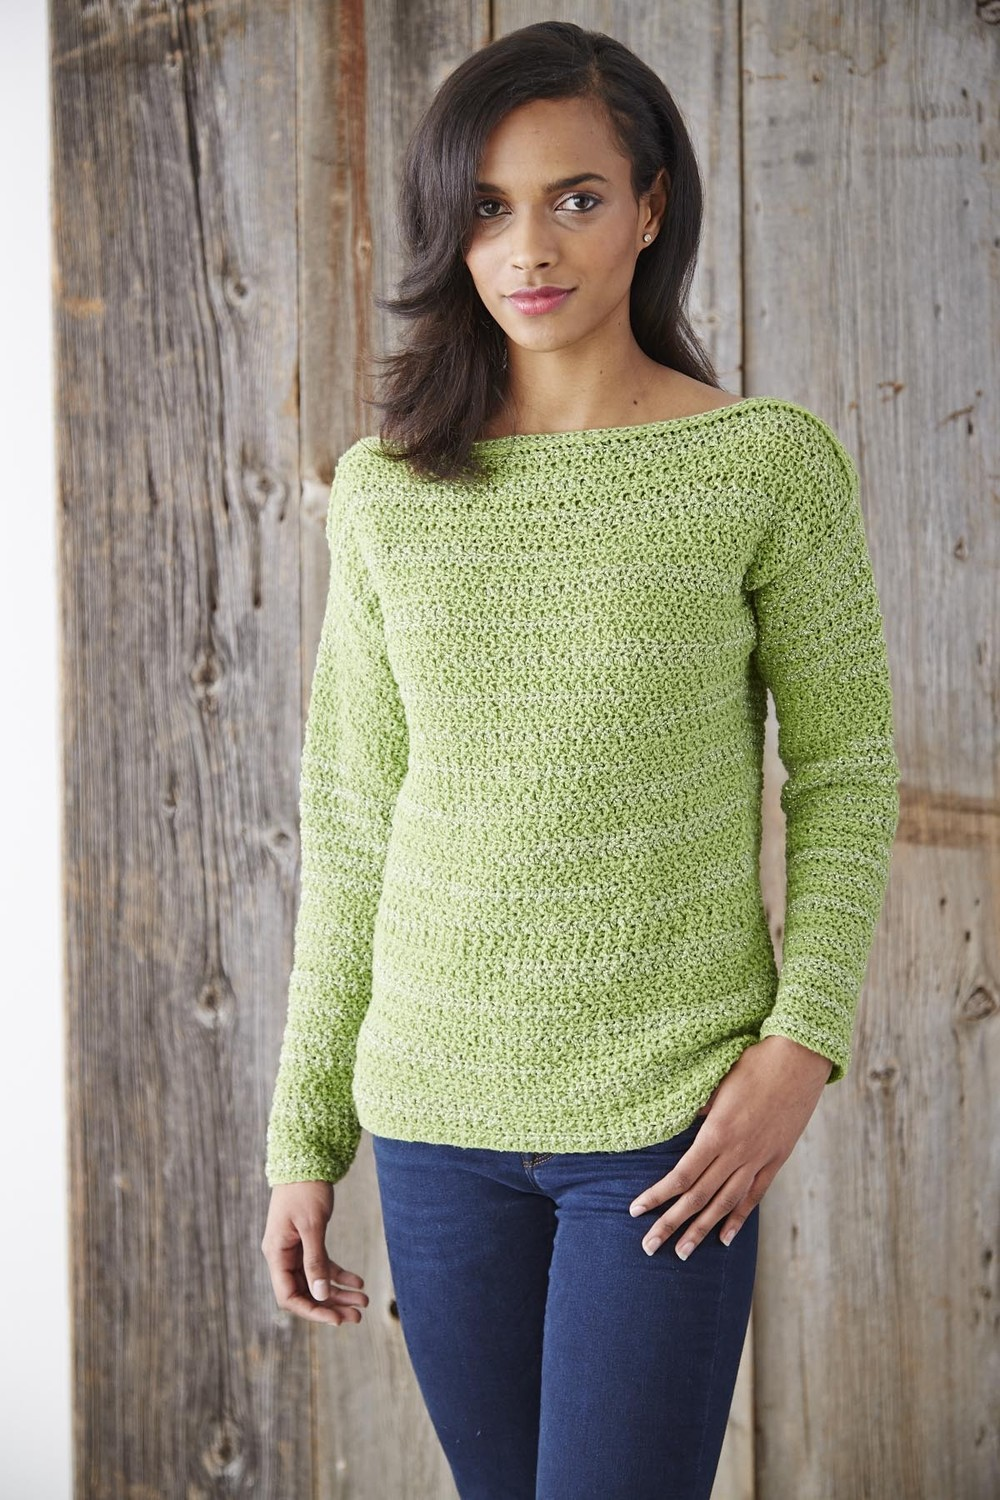 For the perfect light sweater for spring or summer, work up this wonderfully easy breezy Boat Neck Pullover Sweater. The boat neck makes this otherwise ordinary crochet sweater pattern into something simply glamorous to wear. You can throw this sweater over a t-shirt or tank top when the breeze.